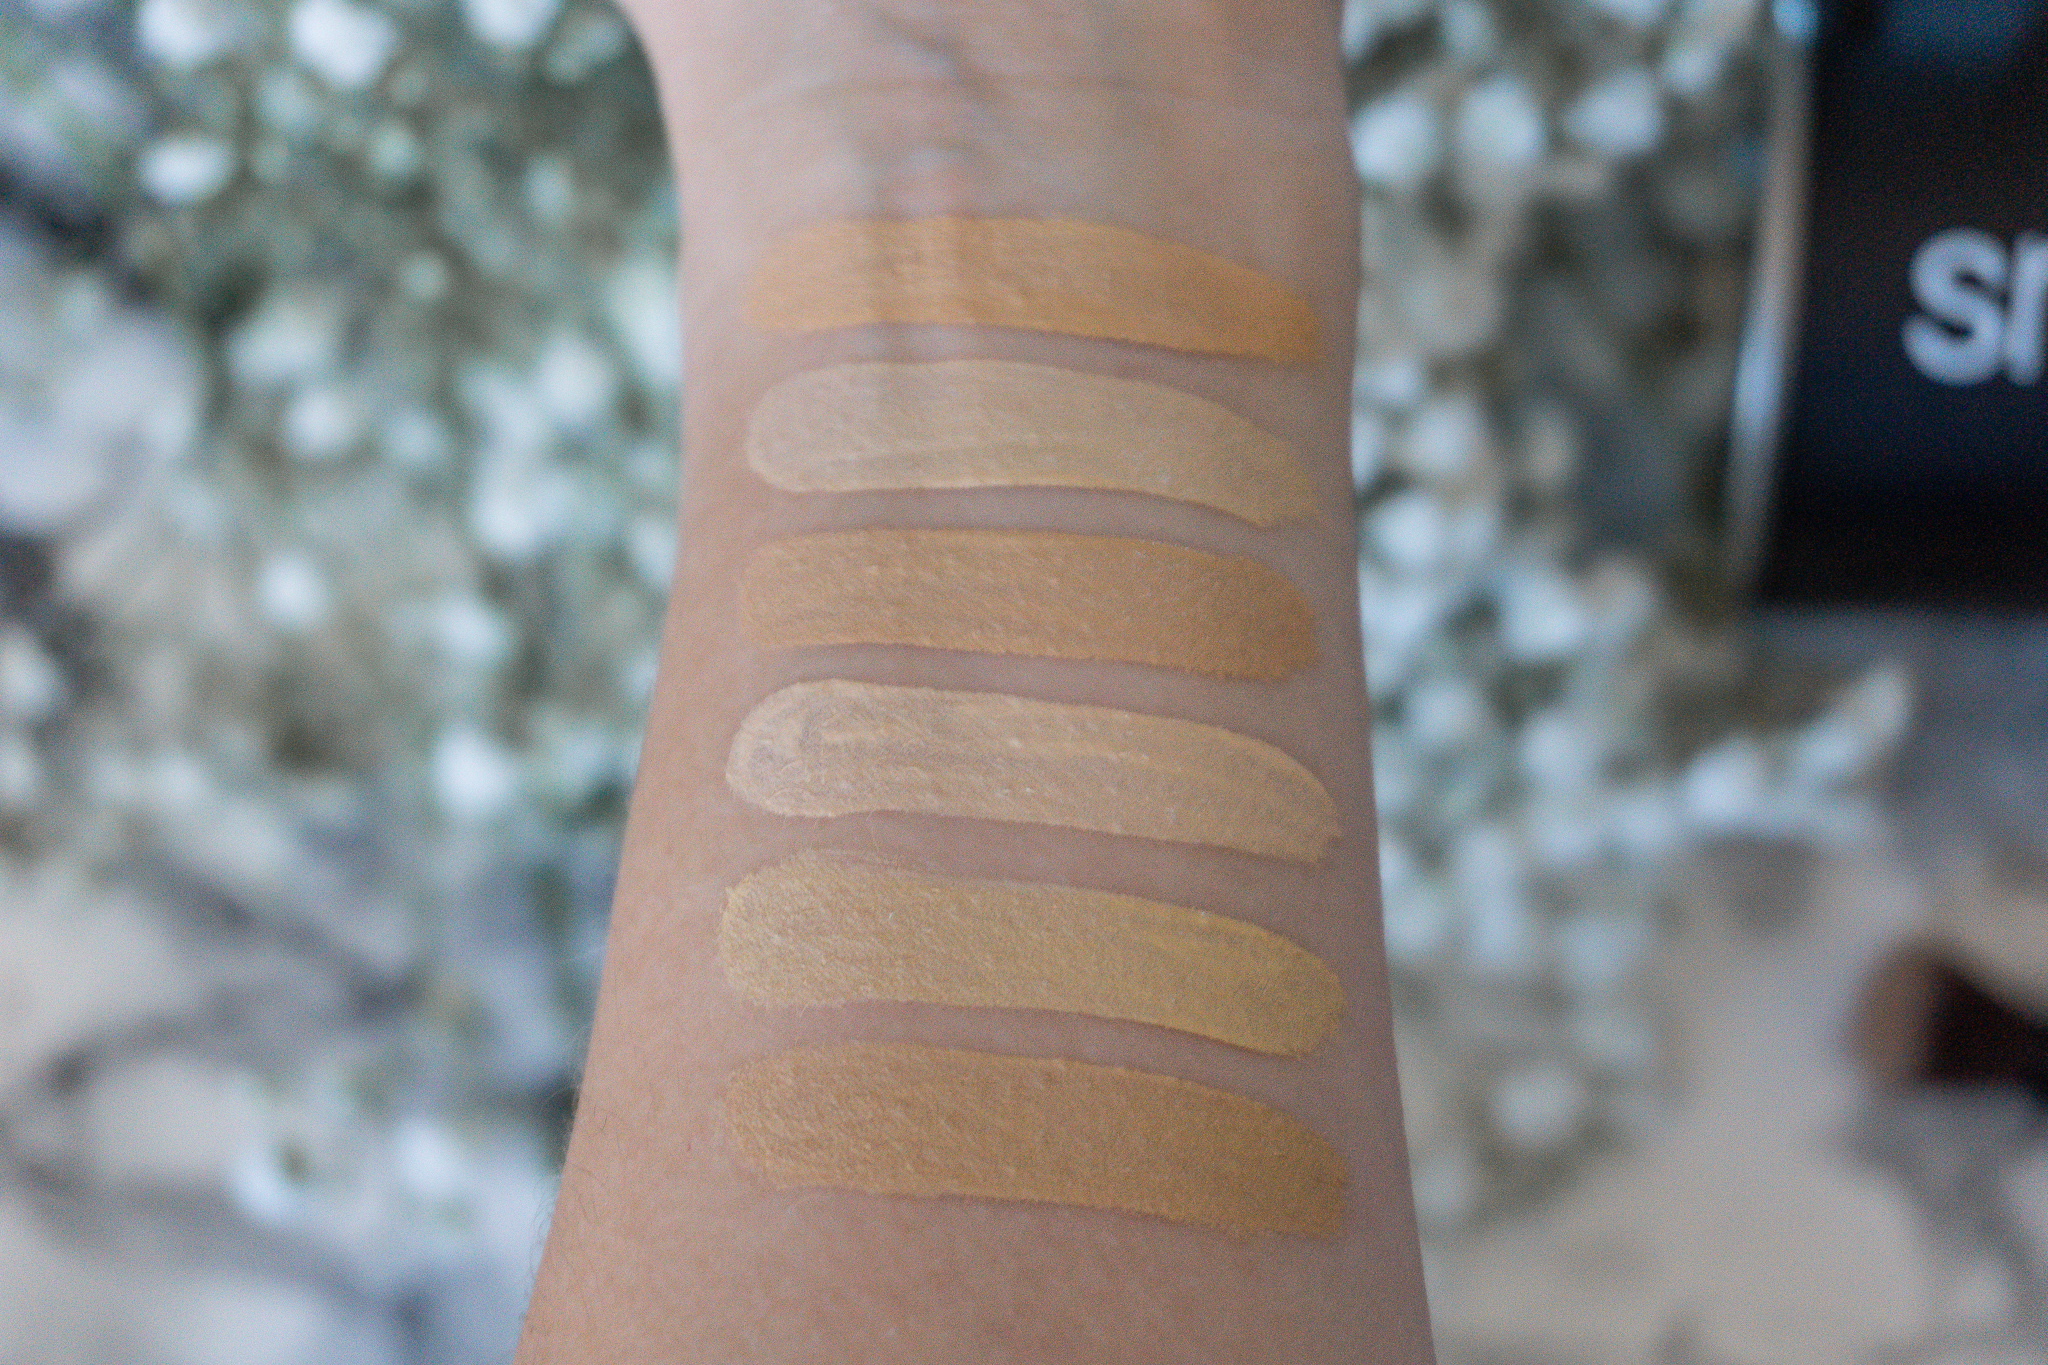 Studio Skin Flawless 24 Hour Concealer Smashbox Swatches